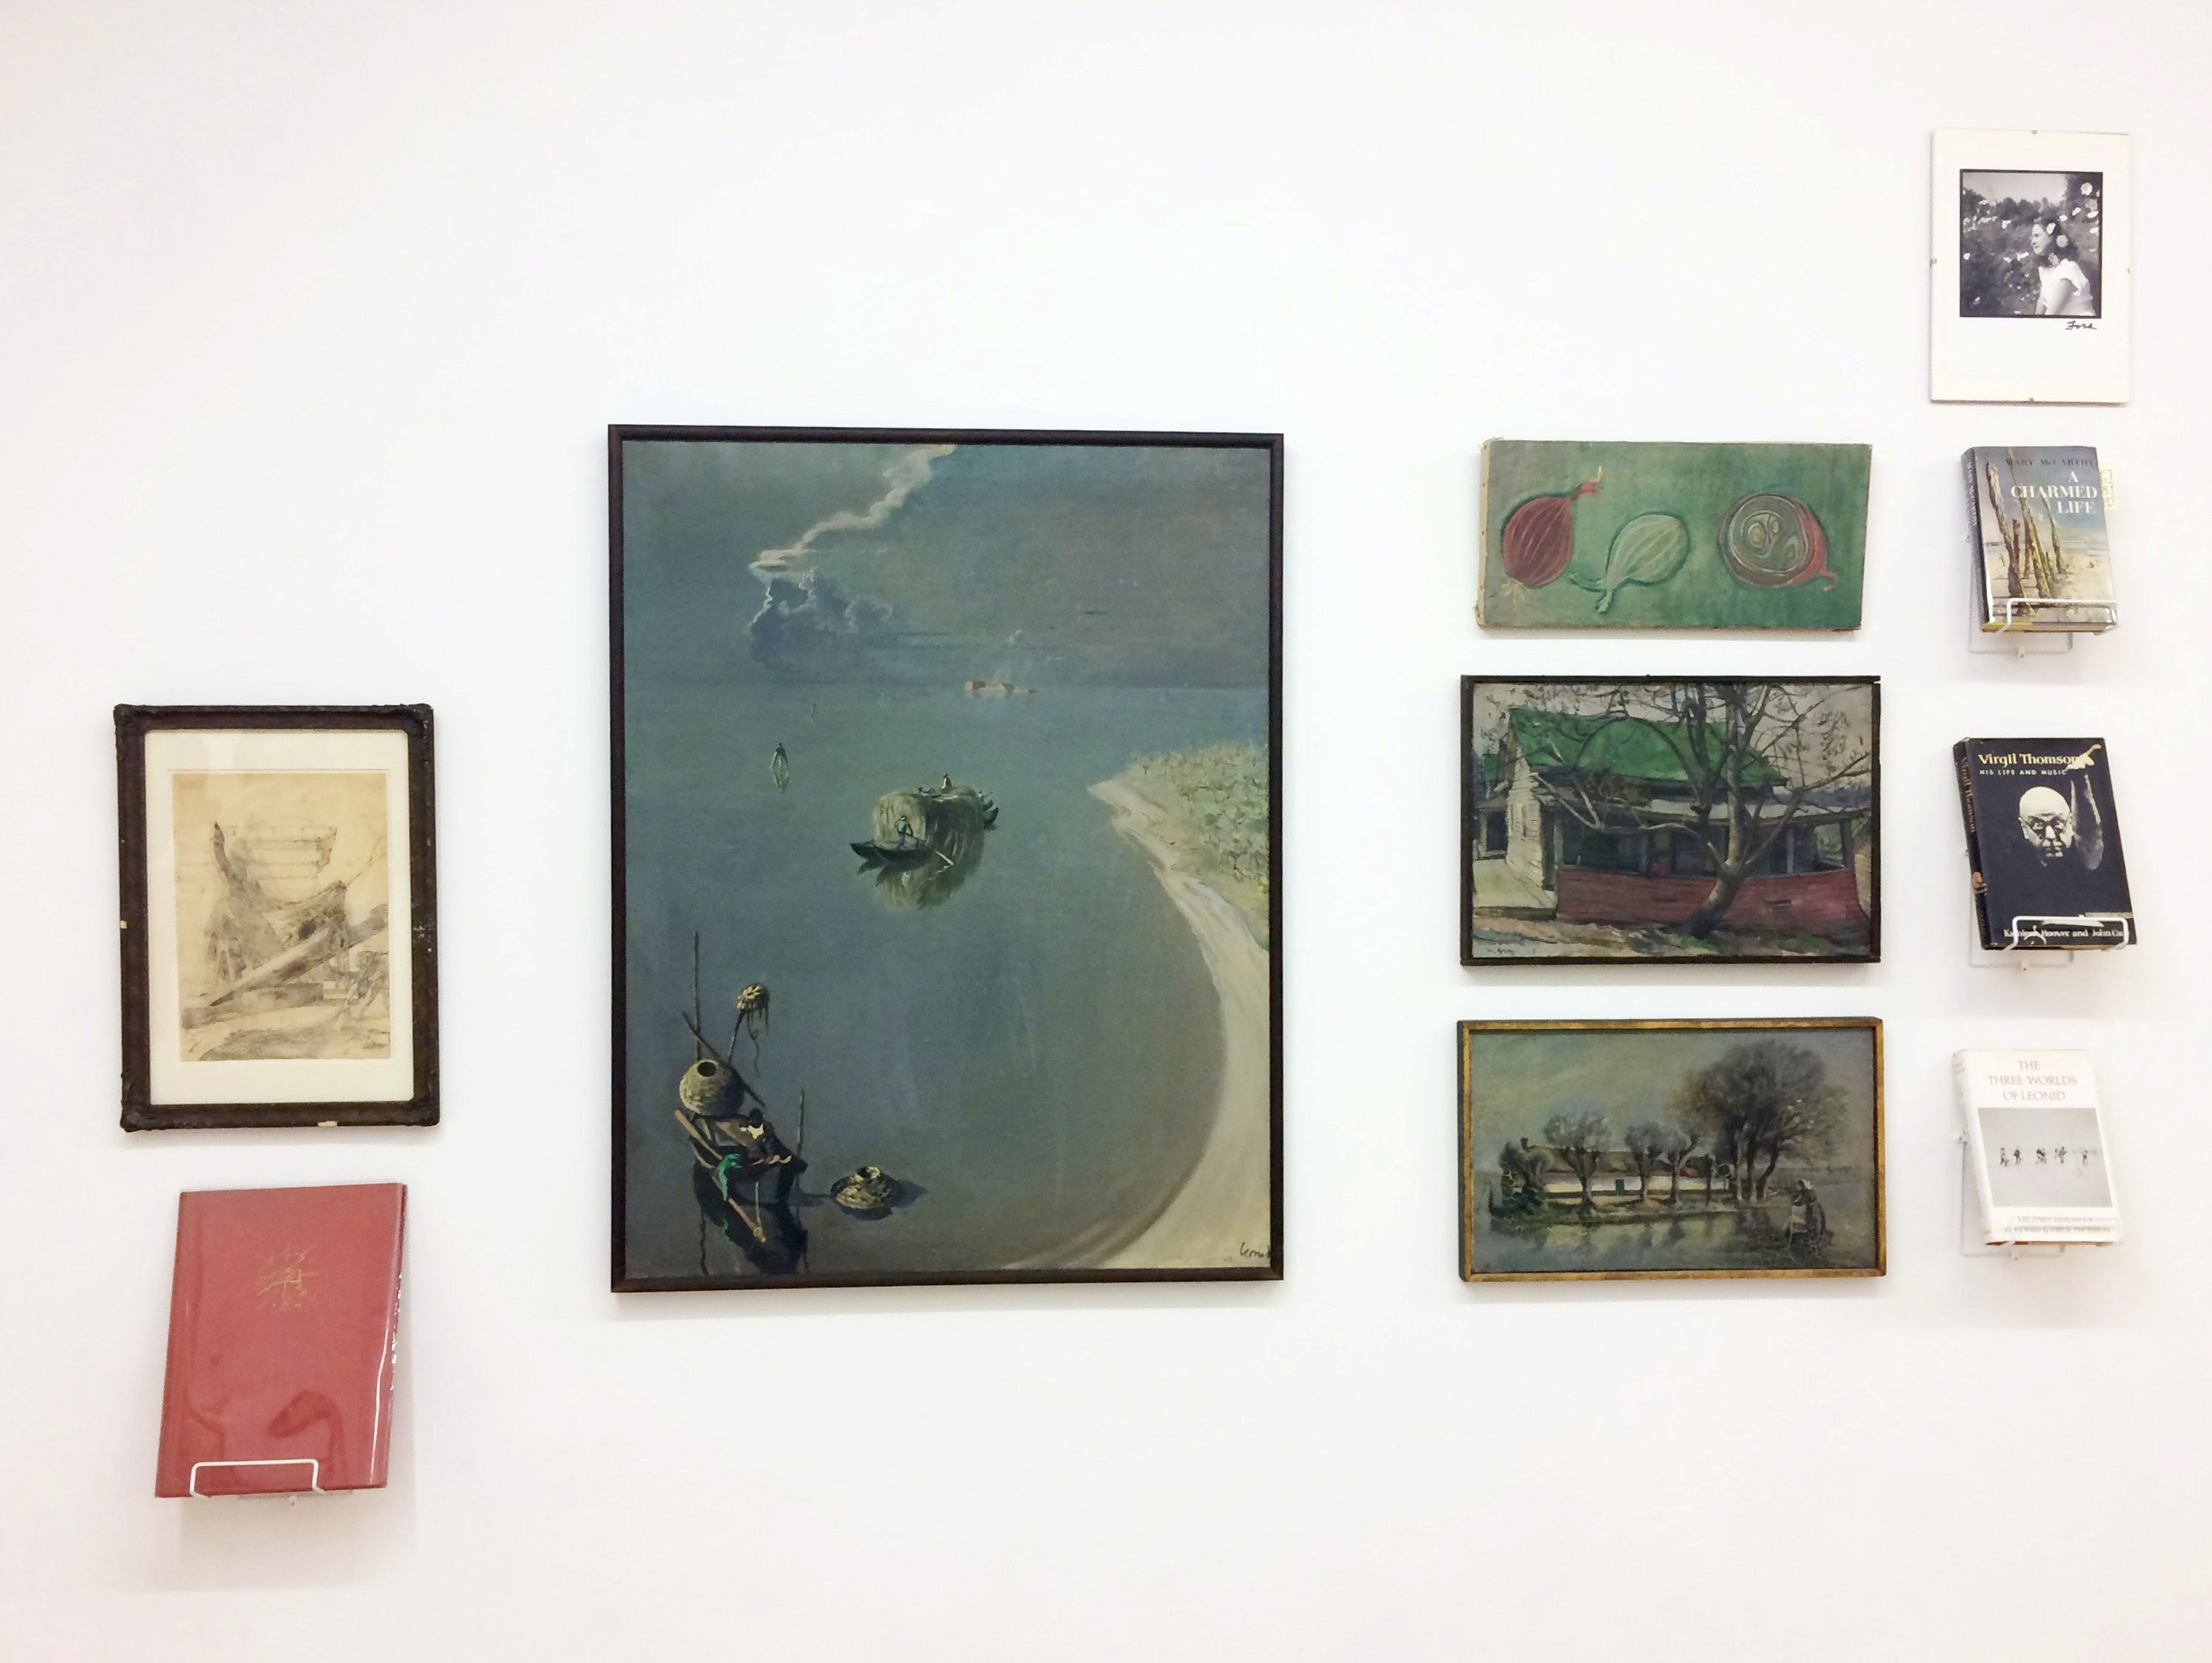 Installation view: <em>Acquired on eBay (and from other surrogate sources)</em>, Mitchell Algus Gallery, 2020. Pictured: Eugene Berman, Leonid (Berman), Mary Meigs, Maurice Grosser, Mary McCarthy. Courtesy Mitchell Algus.